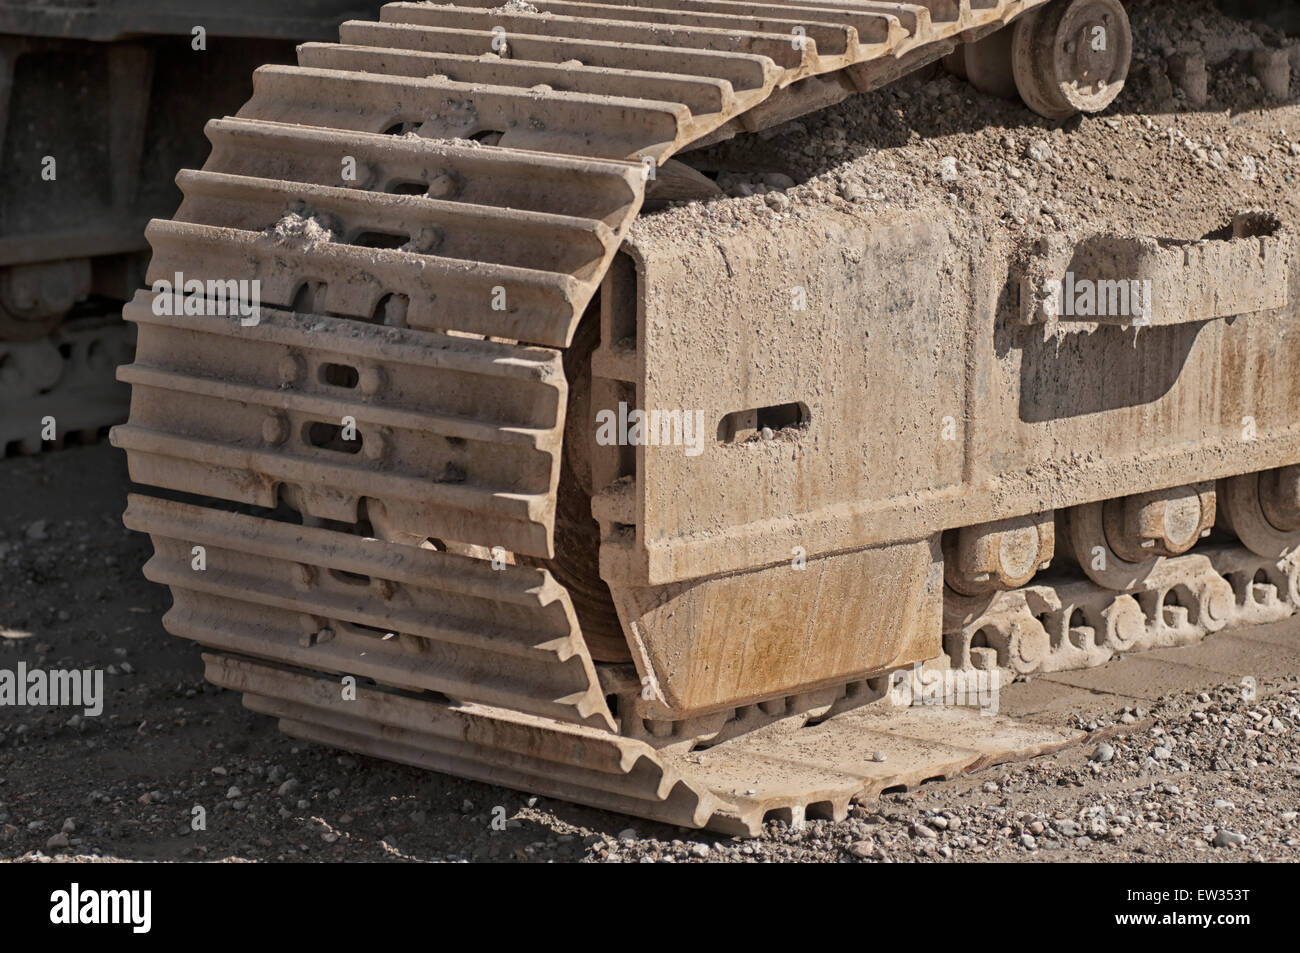 Construction vehicles on a pebbled UK beach - Stock Image